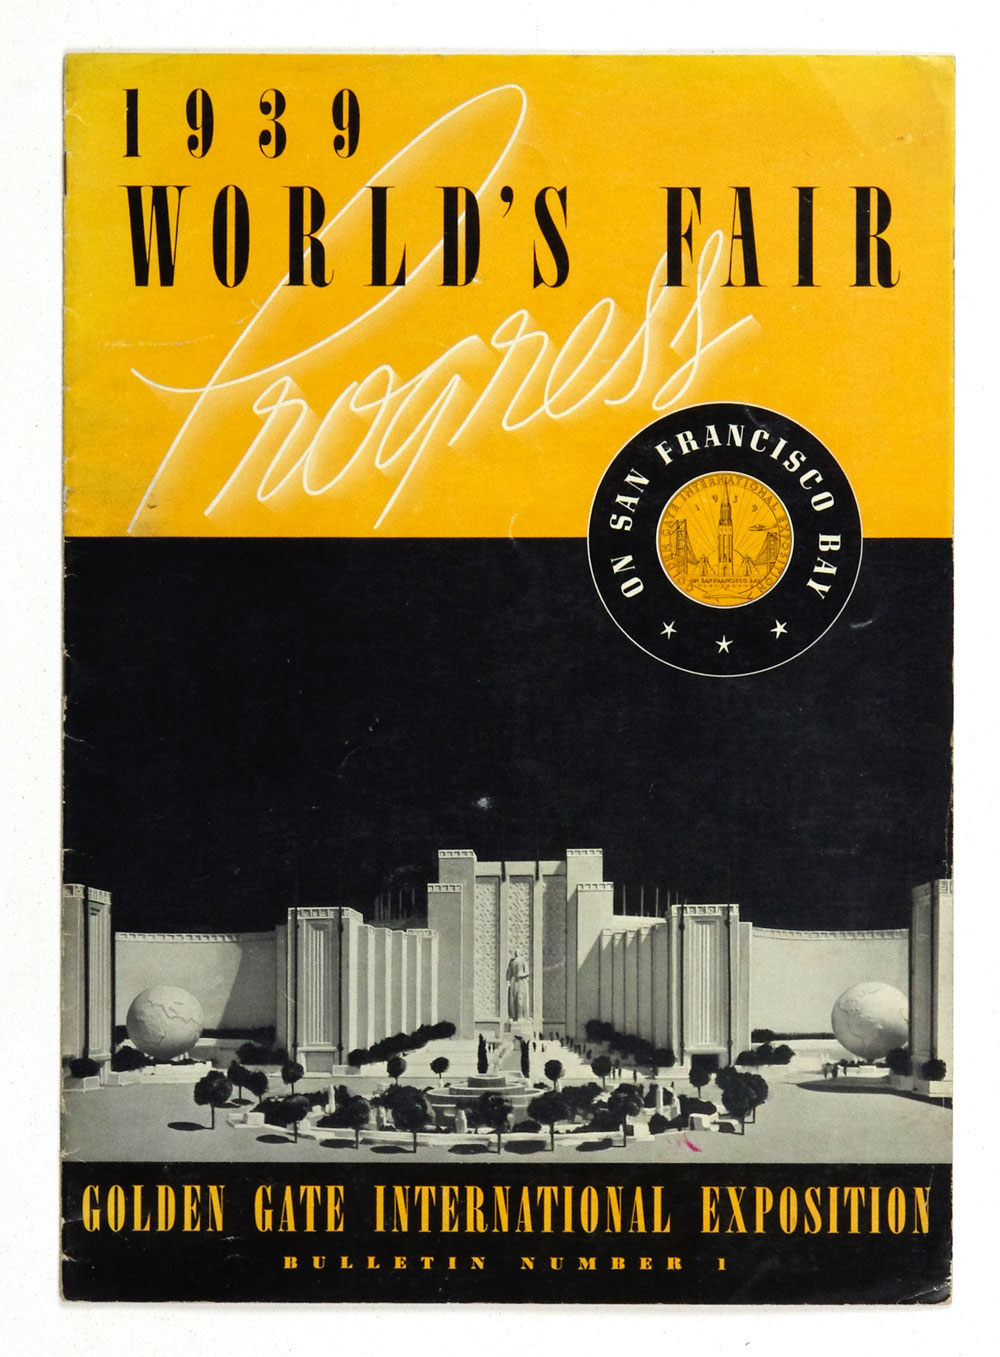 1939 World's Fair on San Francsico Bay Bulletin Number 1